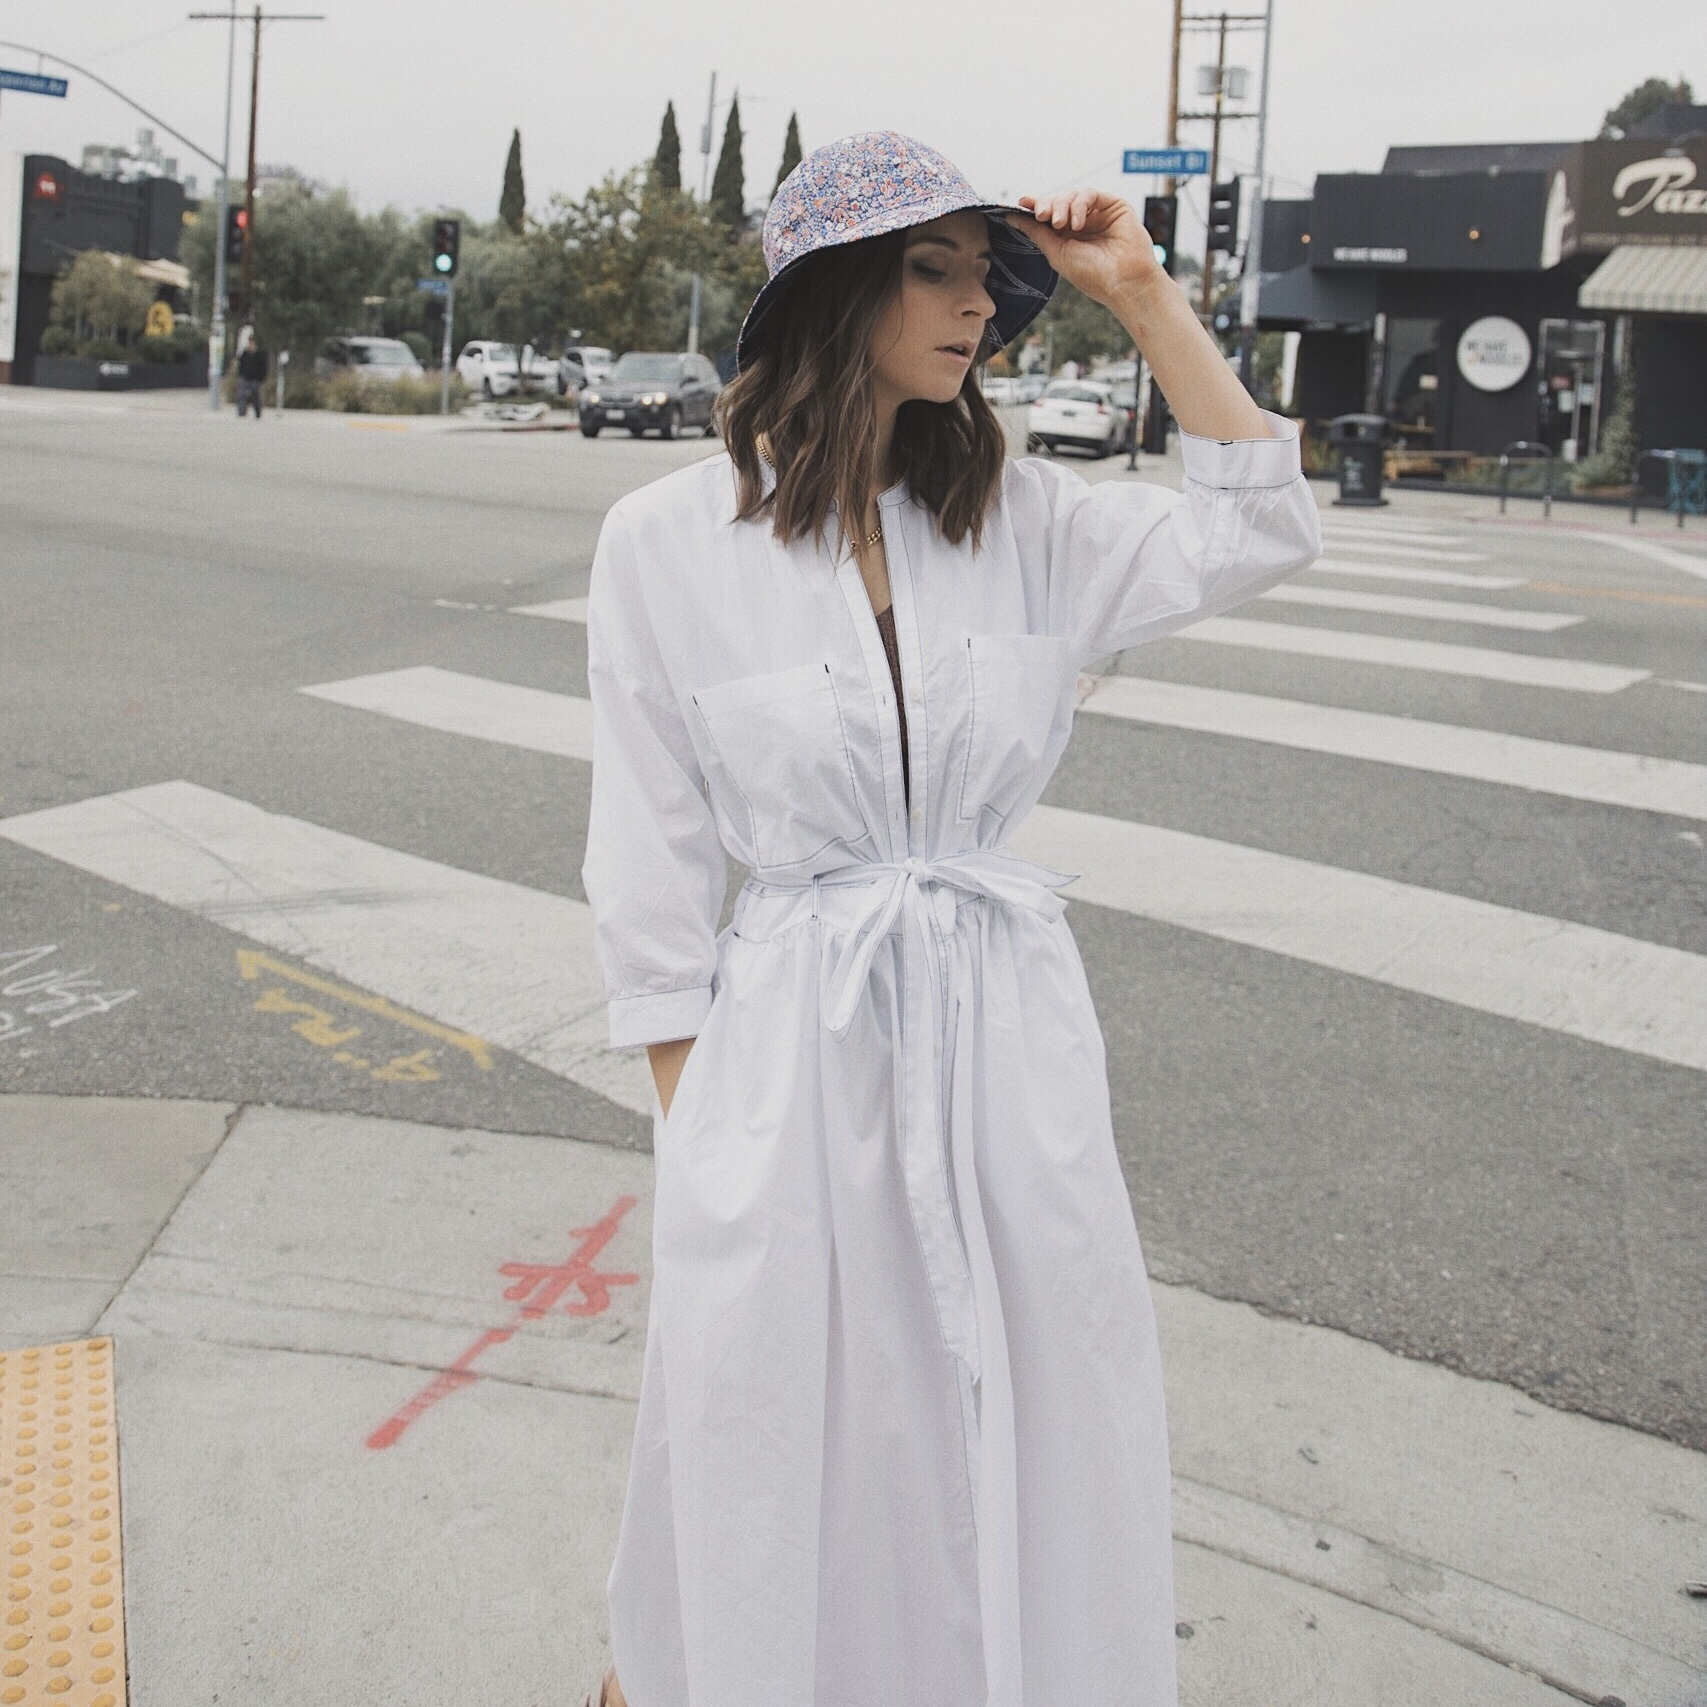 Summer hats 2019: Visor hat, bucket hat, ribbon straw hat, raw edge straw bar. Your summer essentials edited by Julia Comil French fashion blogger in Los Angeles